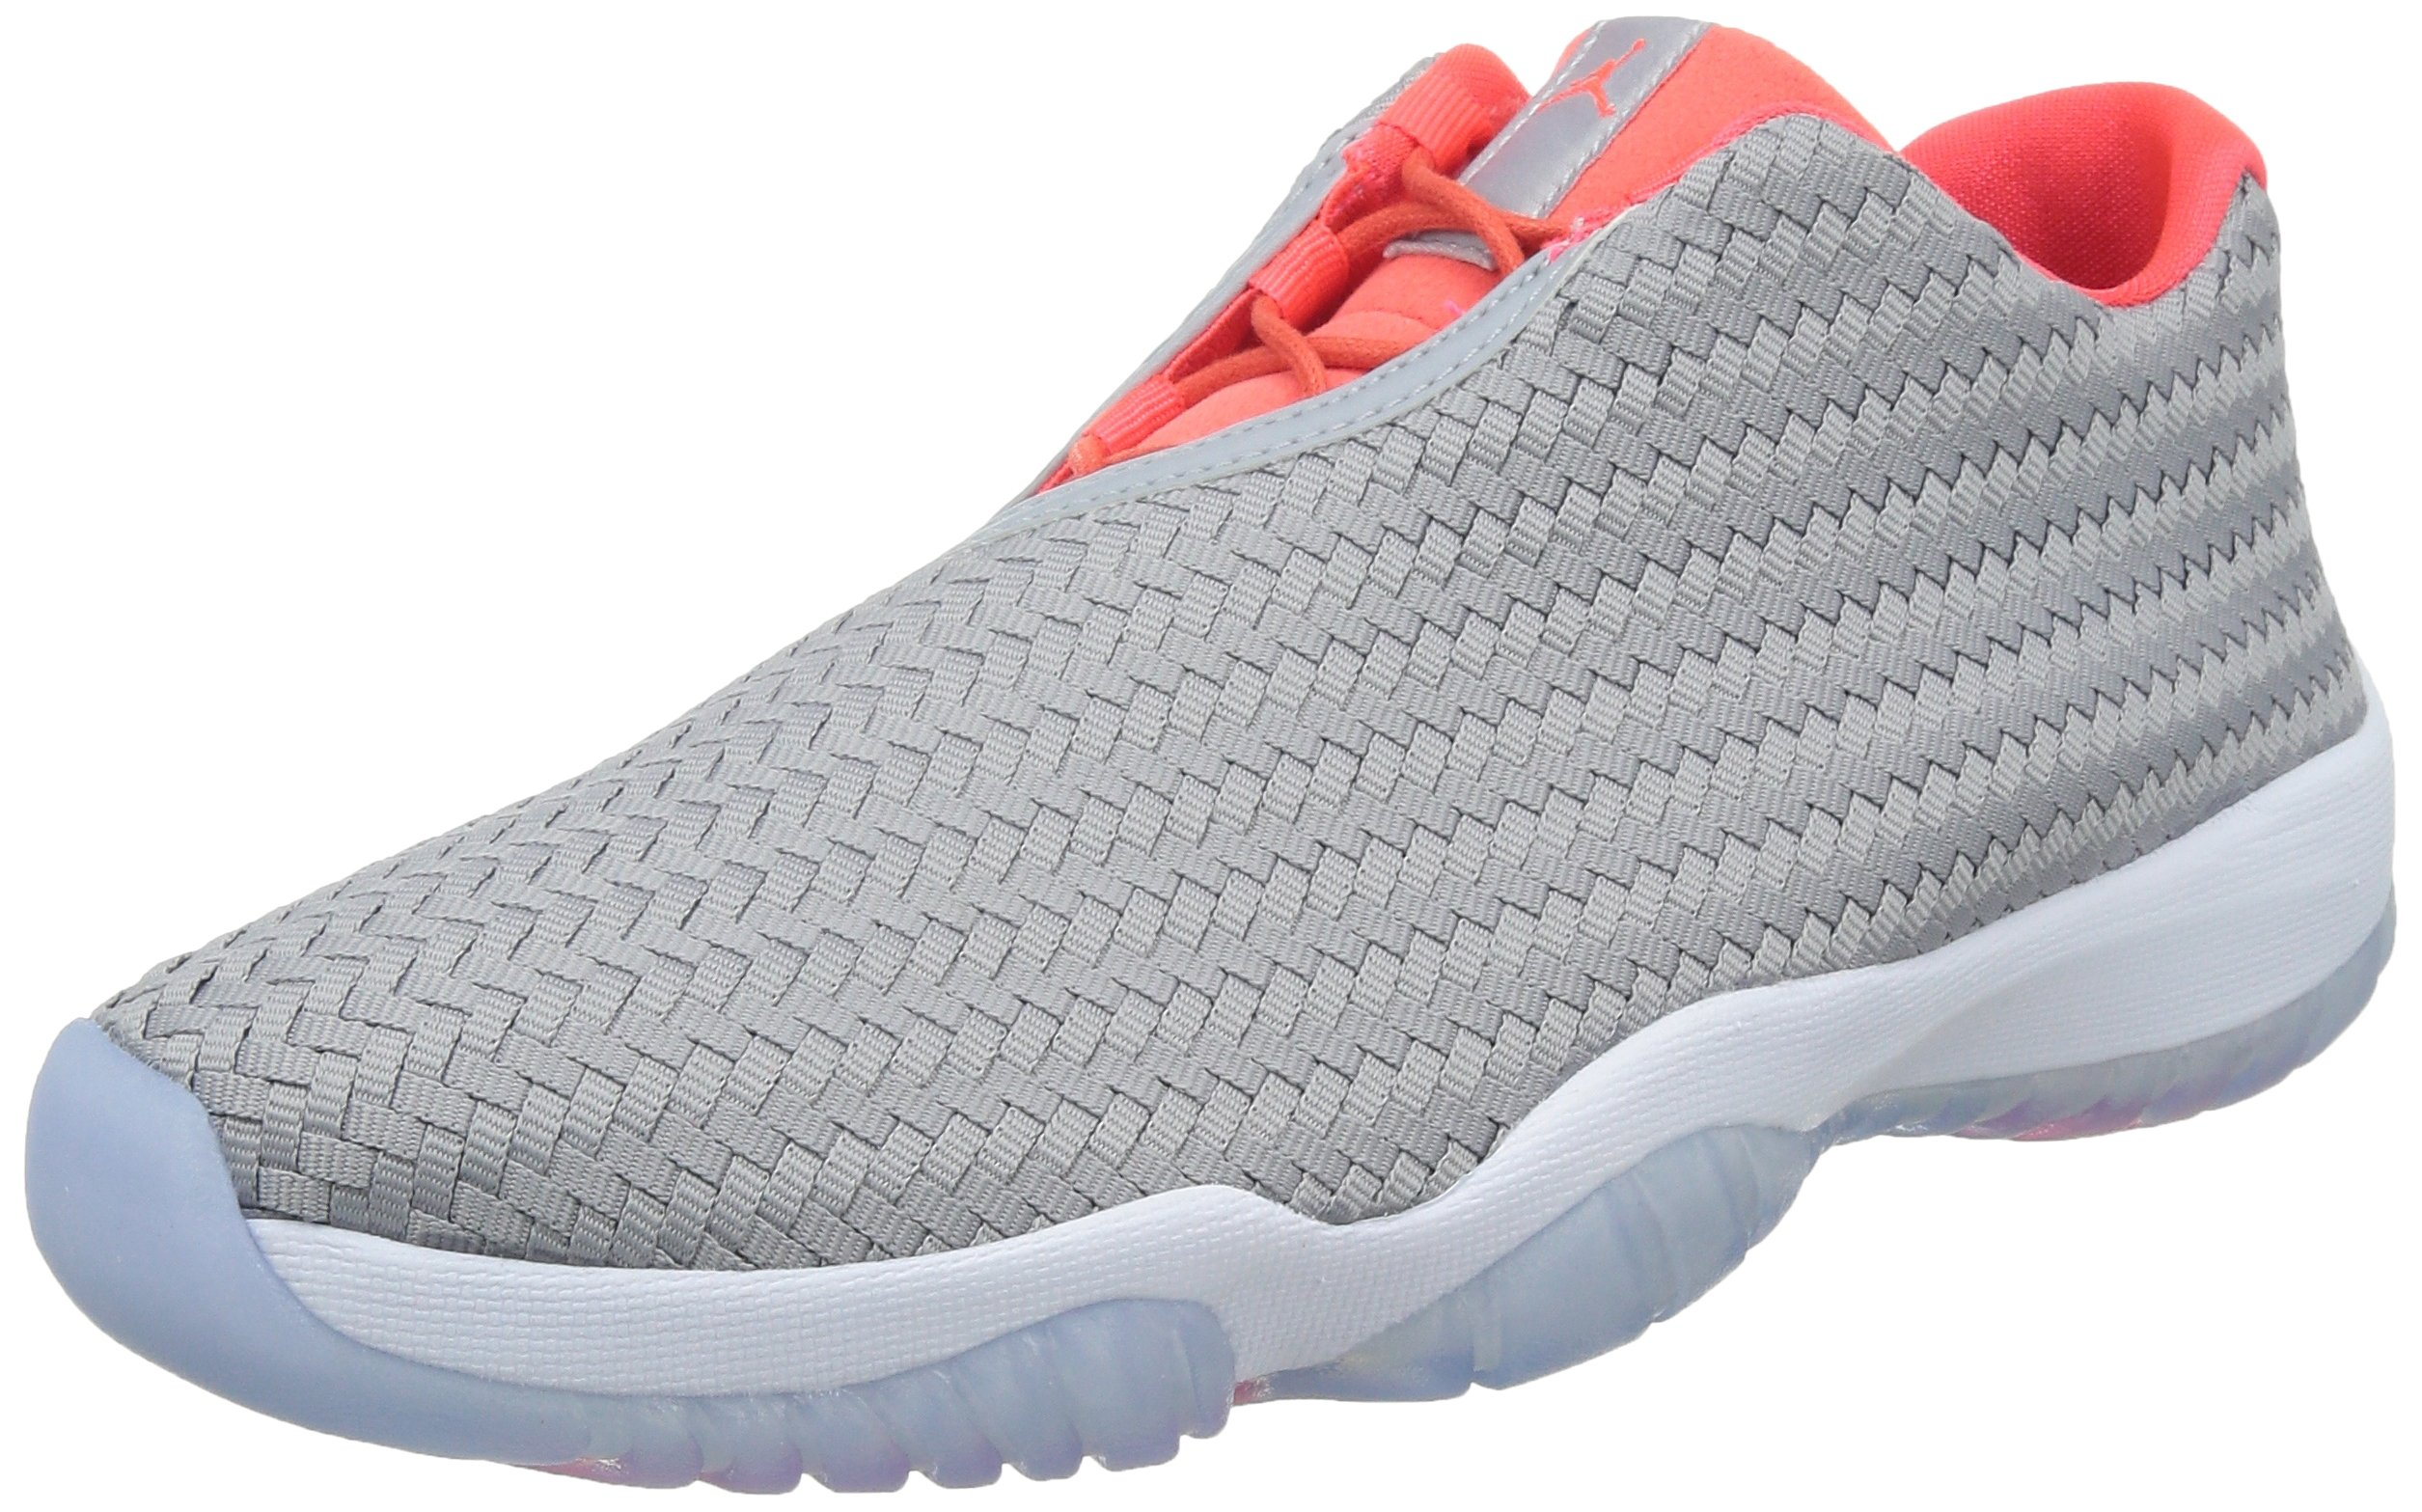 Nike Jordan Men's Air Jordan Future Low